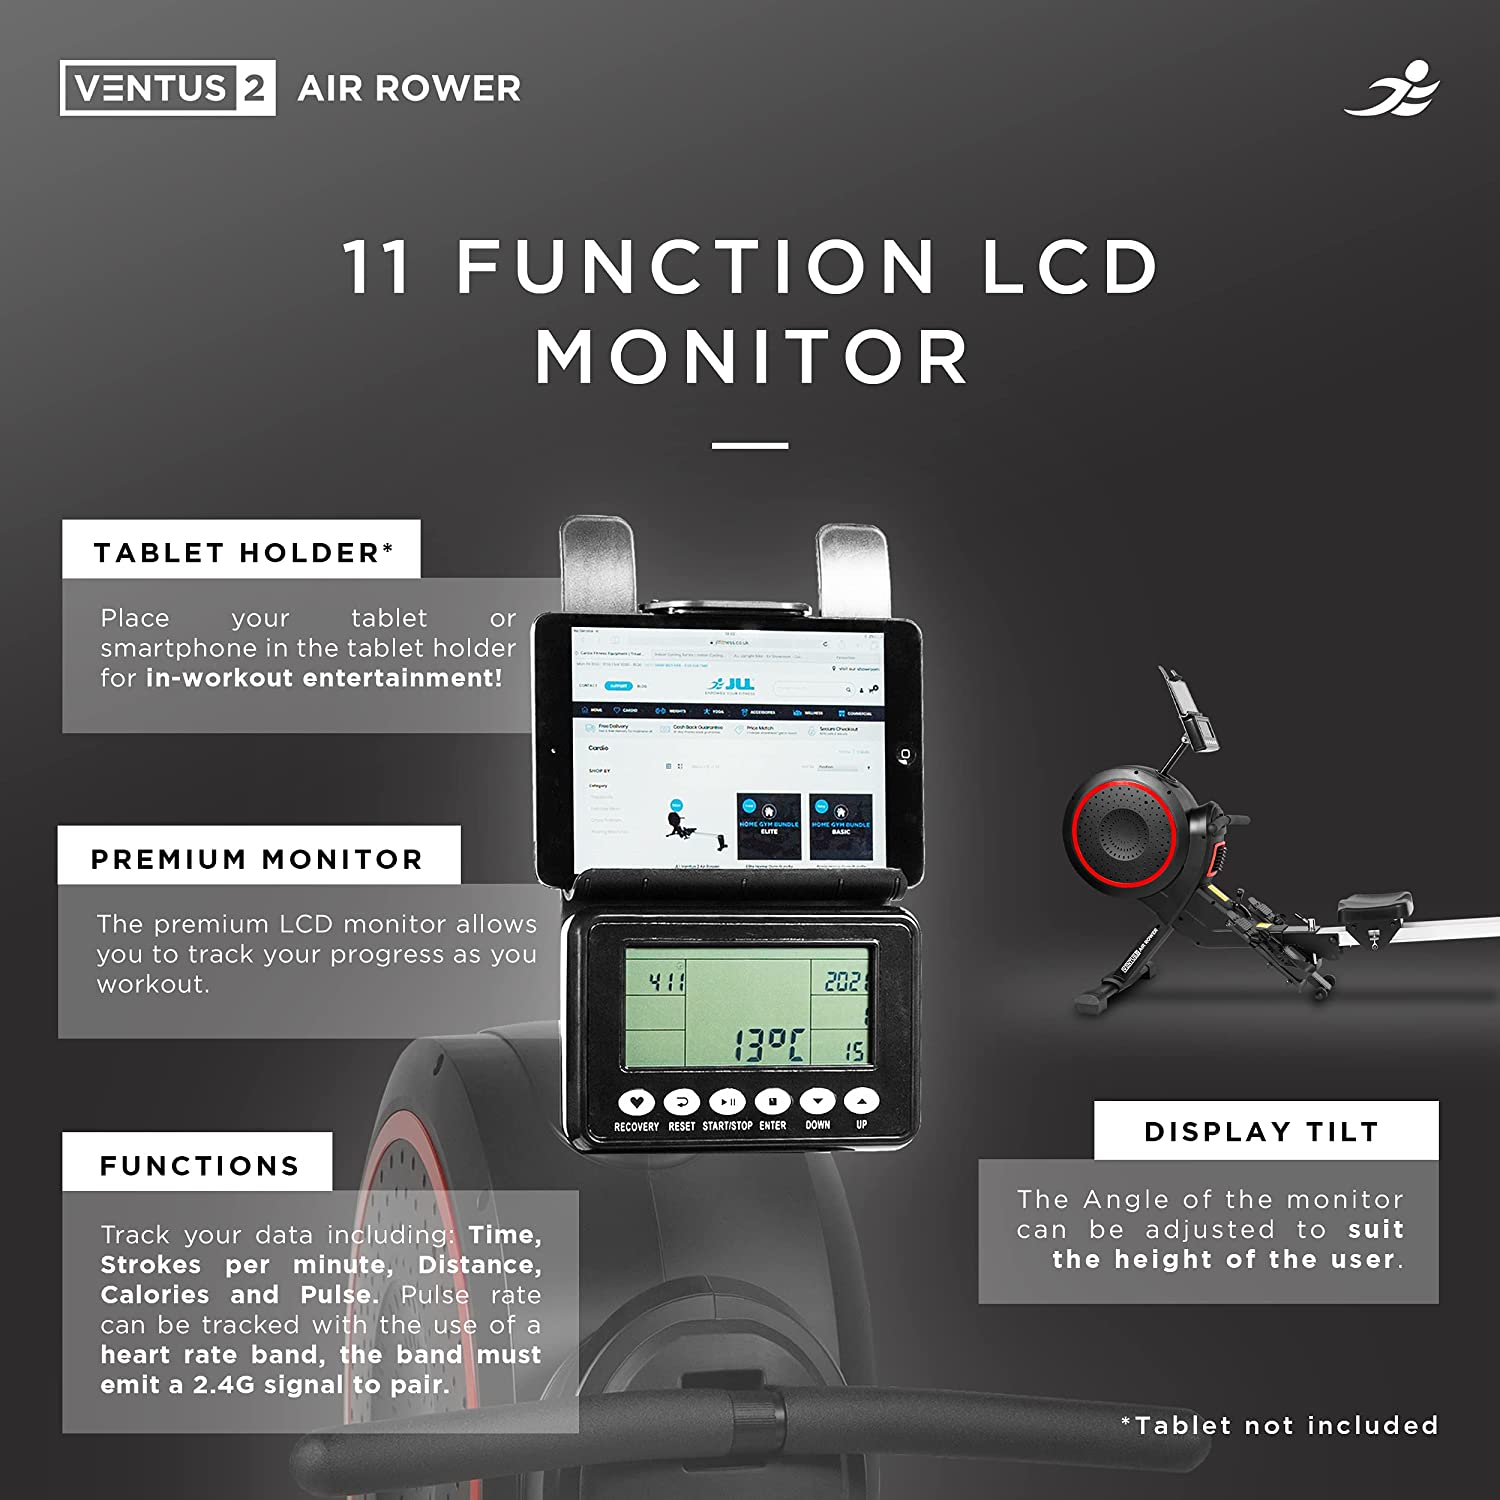 JLL Ventus 2 Air Rower - 11 function LCD Monitor